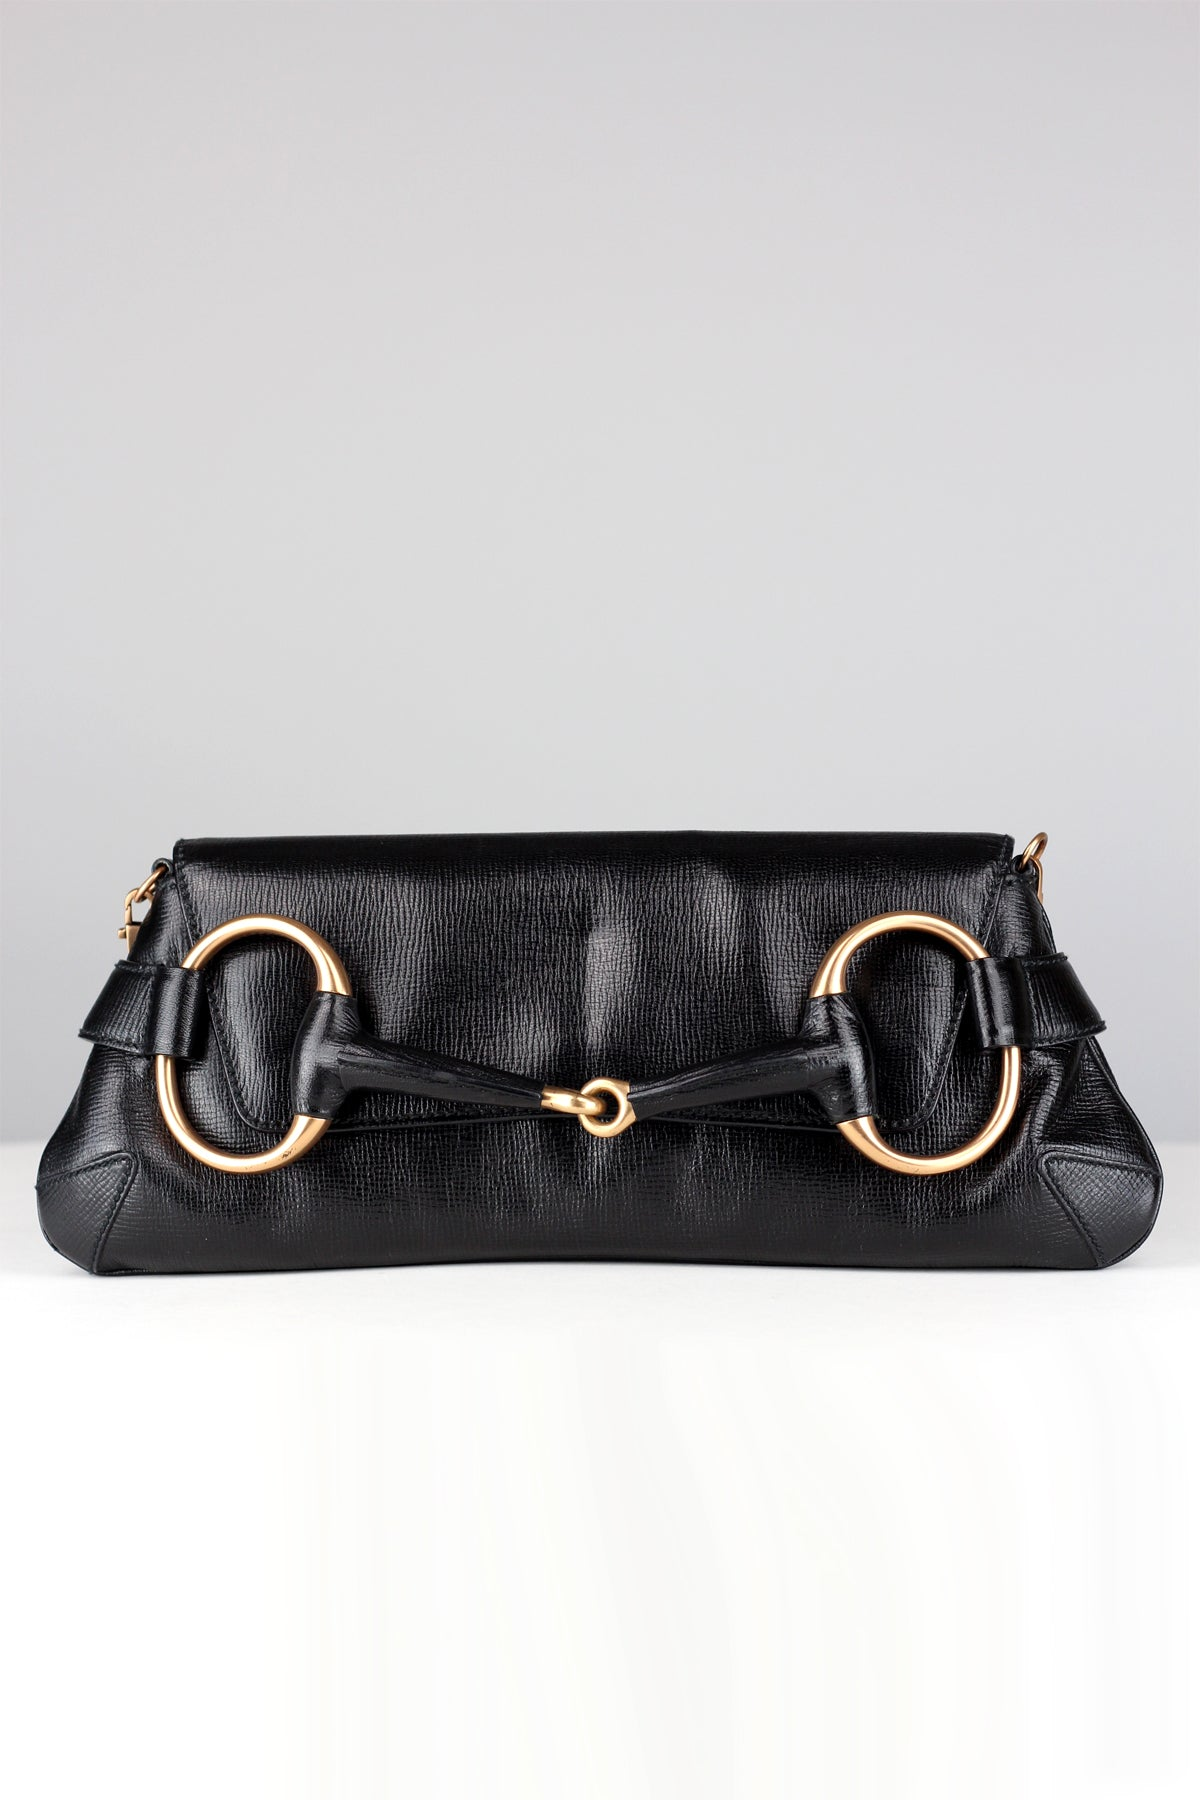 373ac3a640c Gucci Tom Ford 2003 Rare Black Leather and Rose Gold Horsebit Bag ...